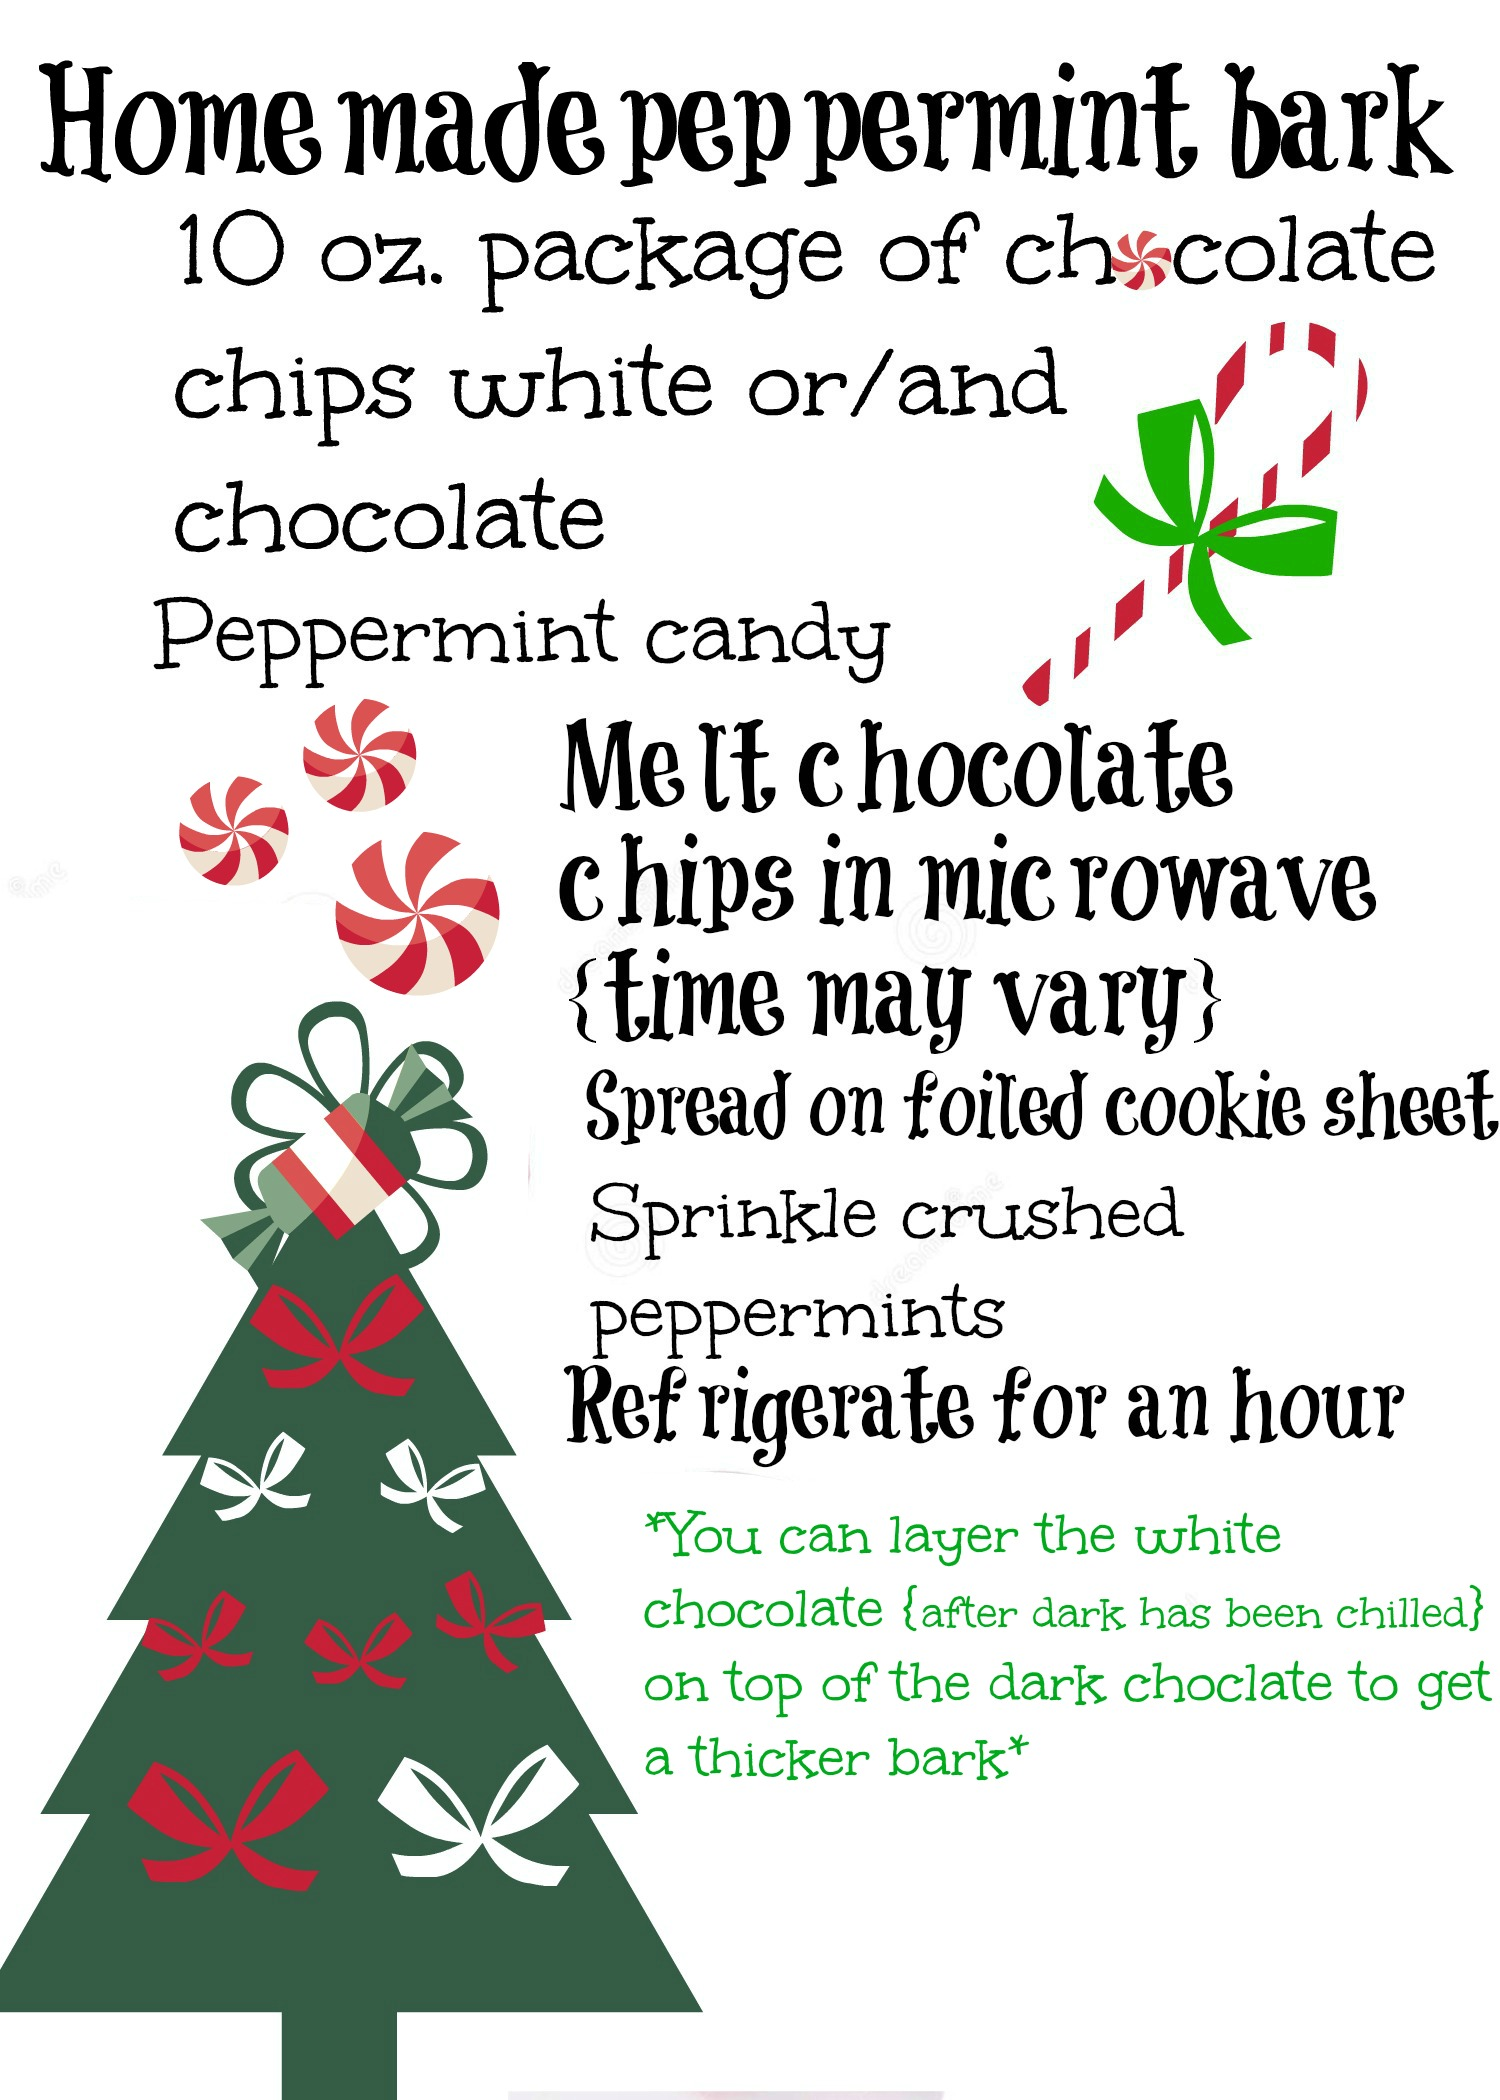 Home made peppermint bark